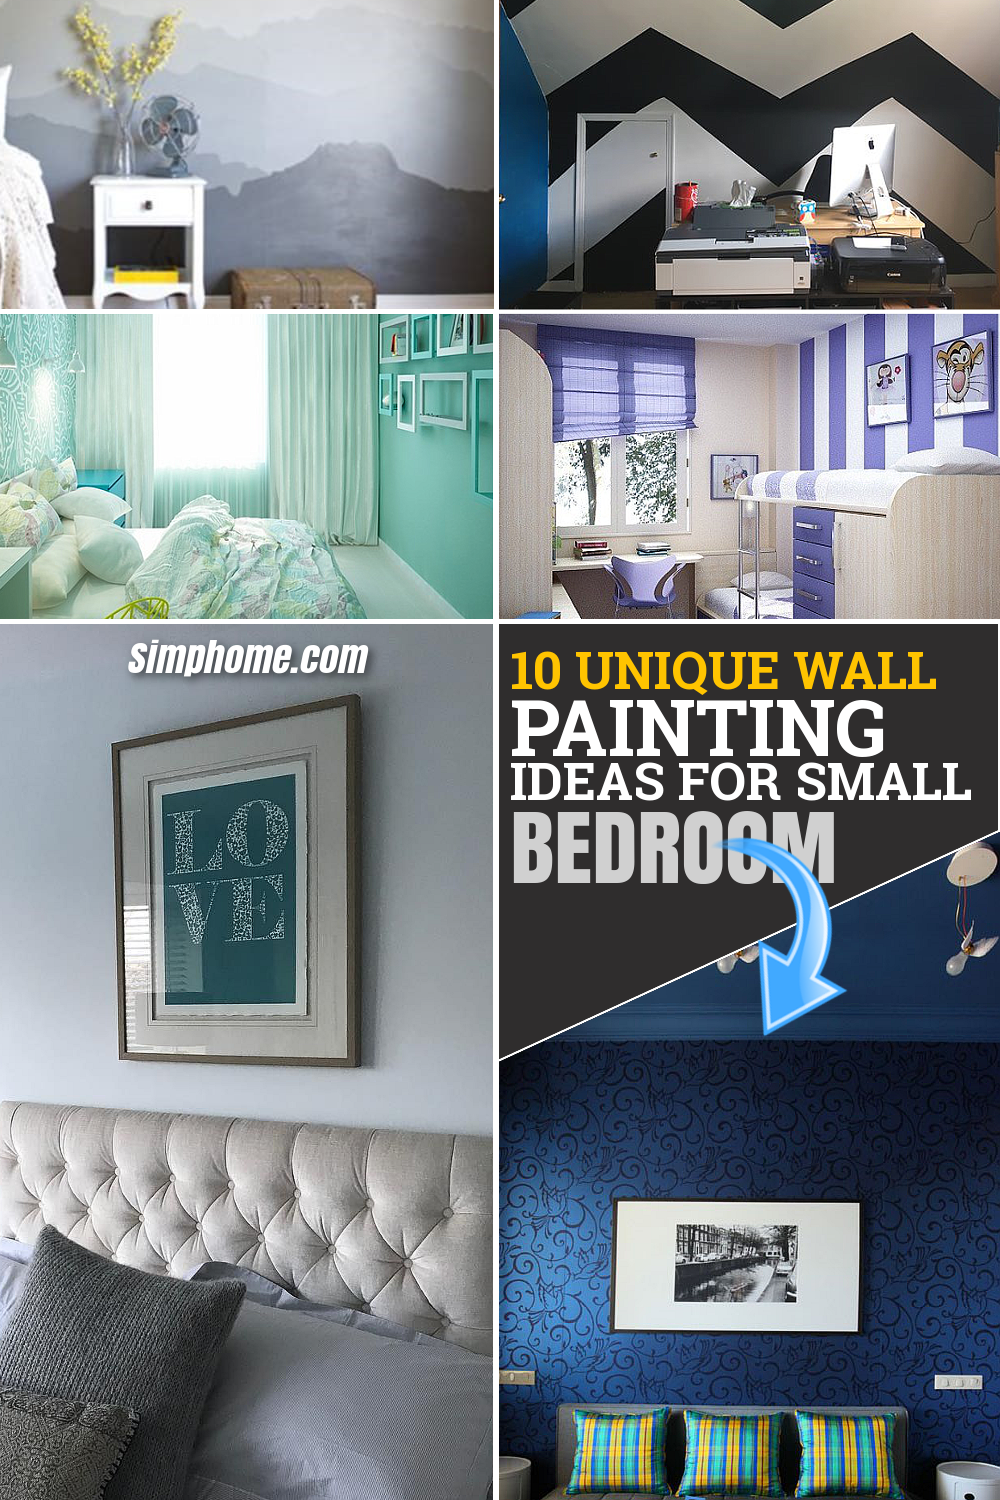 10 Unique Wall Painting Ideas for Small Bedroom via Simphome.com Featured Long Pinterest Image